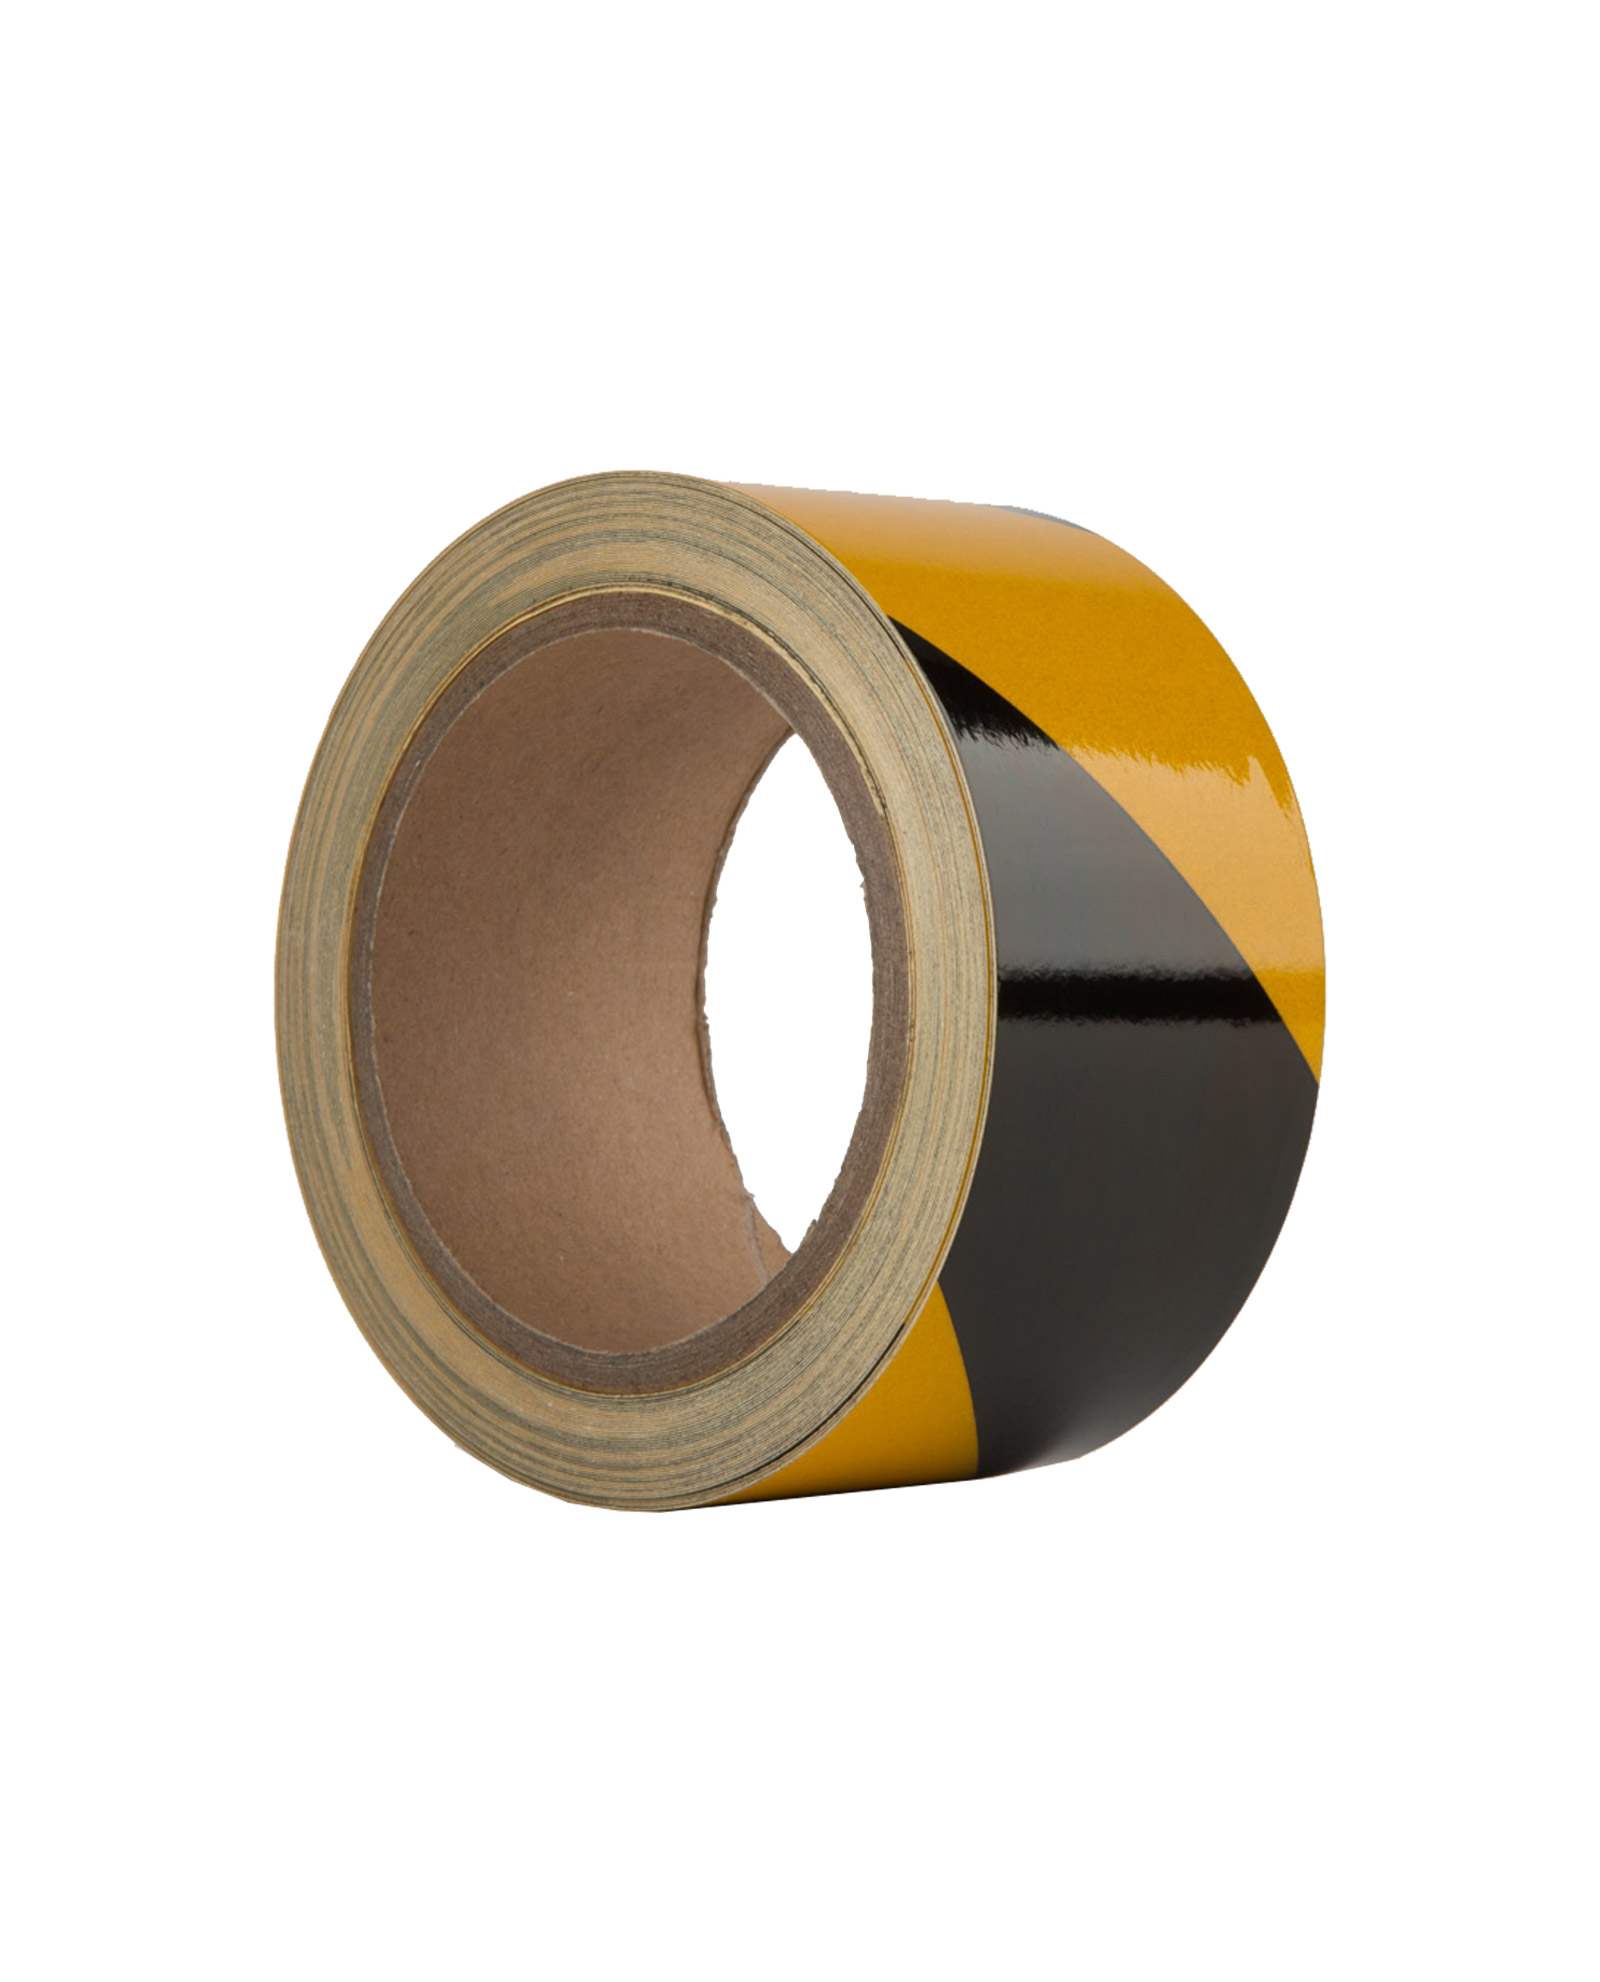 Le Mark Reflective Hazard Tape Black And Yellow Red And White 50mm X 10m 2